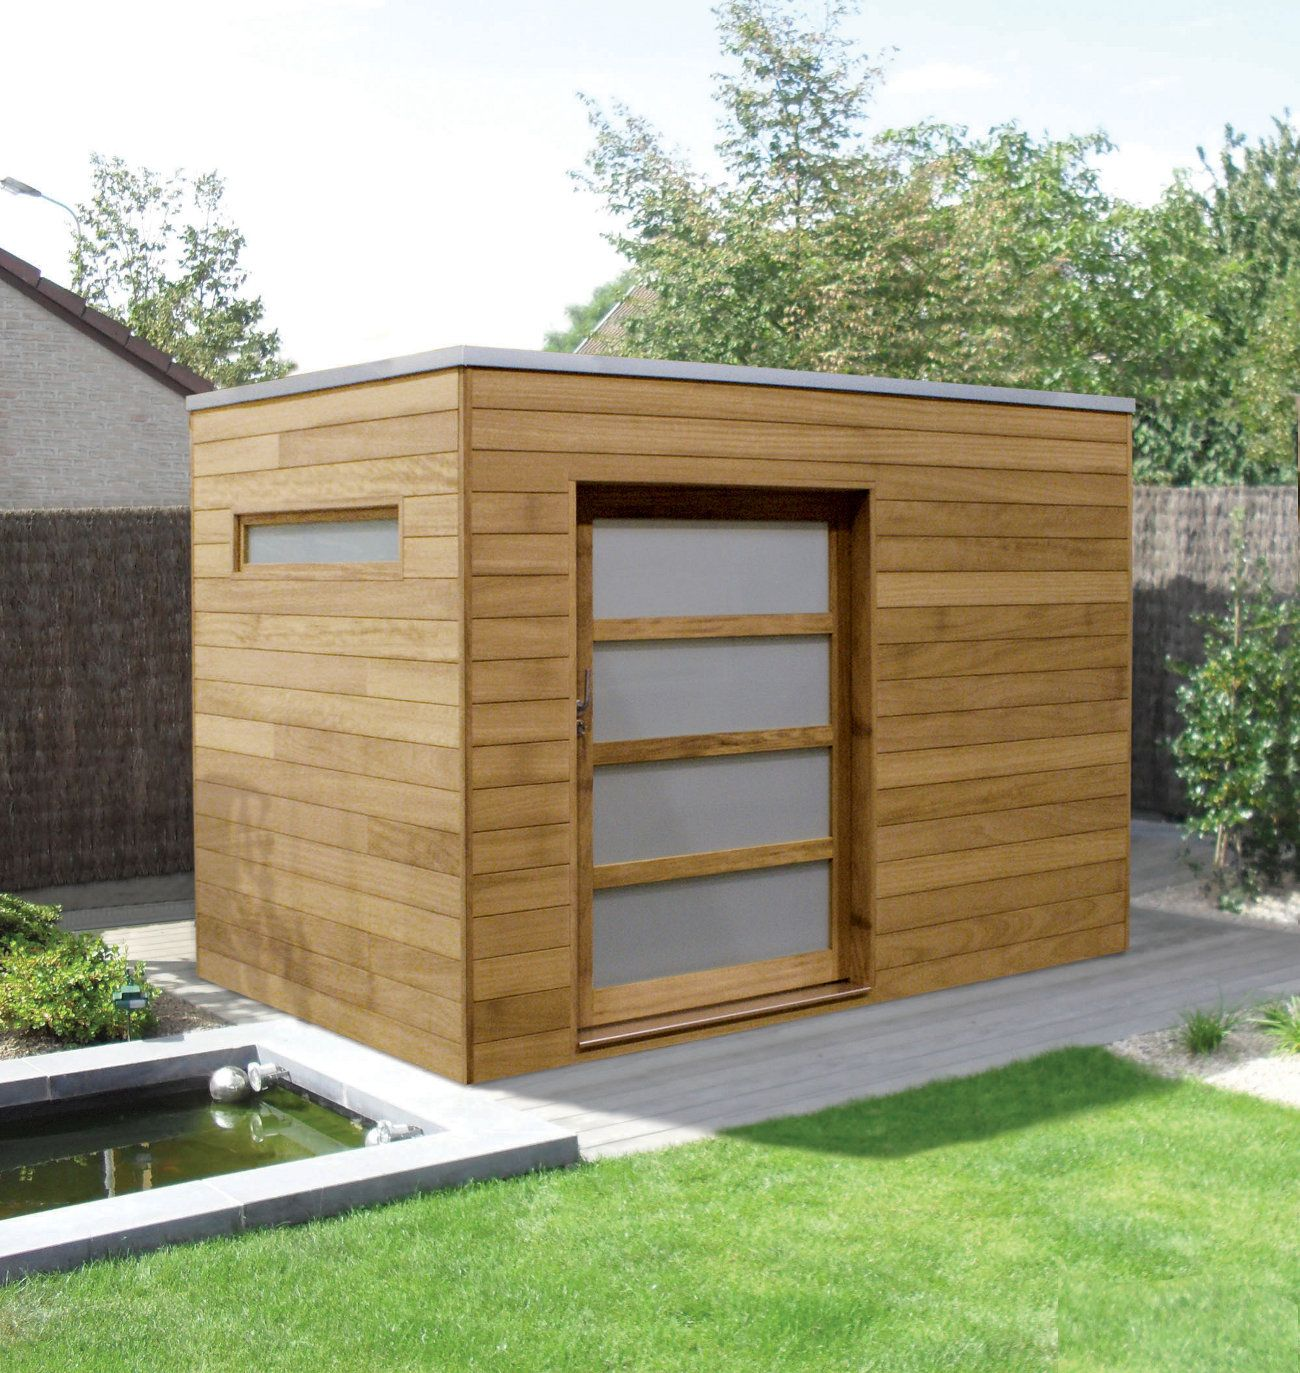 Modern garden sheds to style with our new for Modern garden shed designs